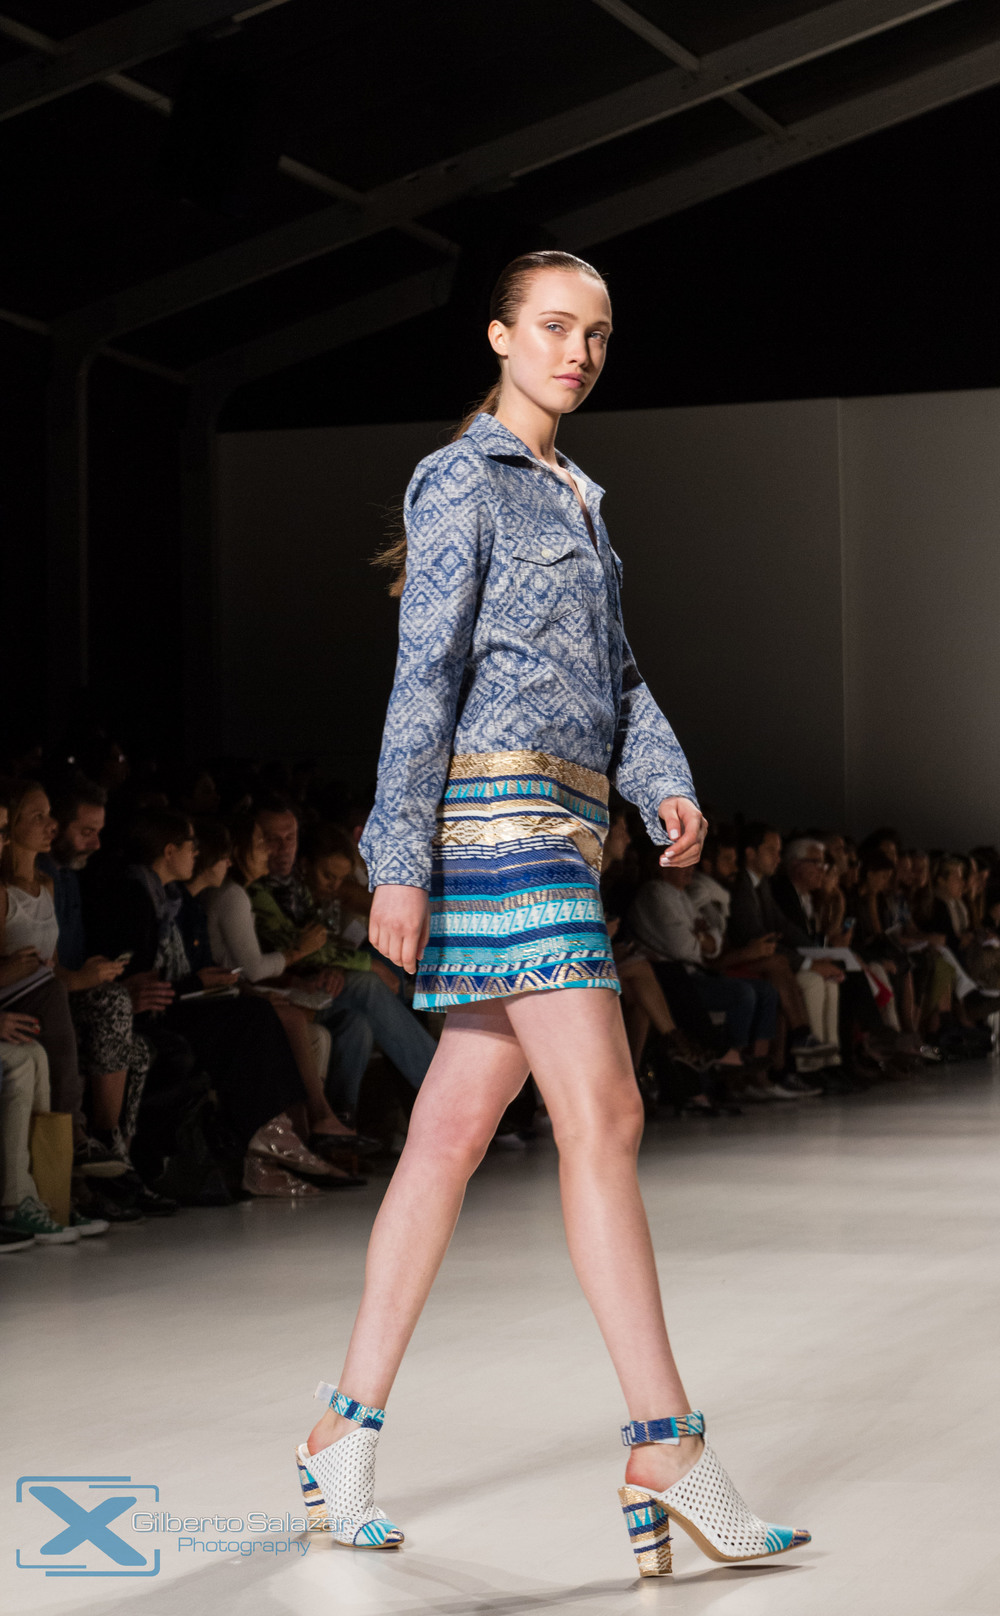 New York Fashion Week 2014 by Gilberto Salazar-23.jpg